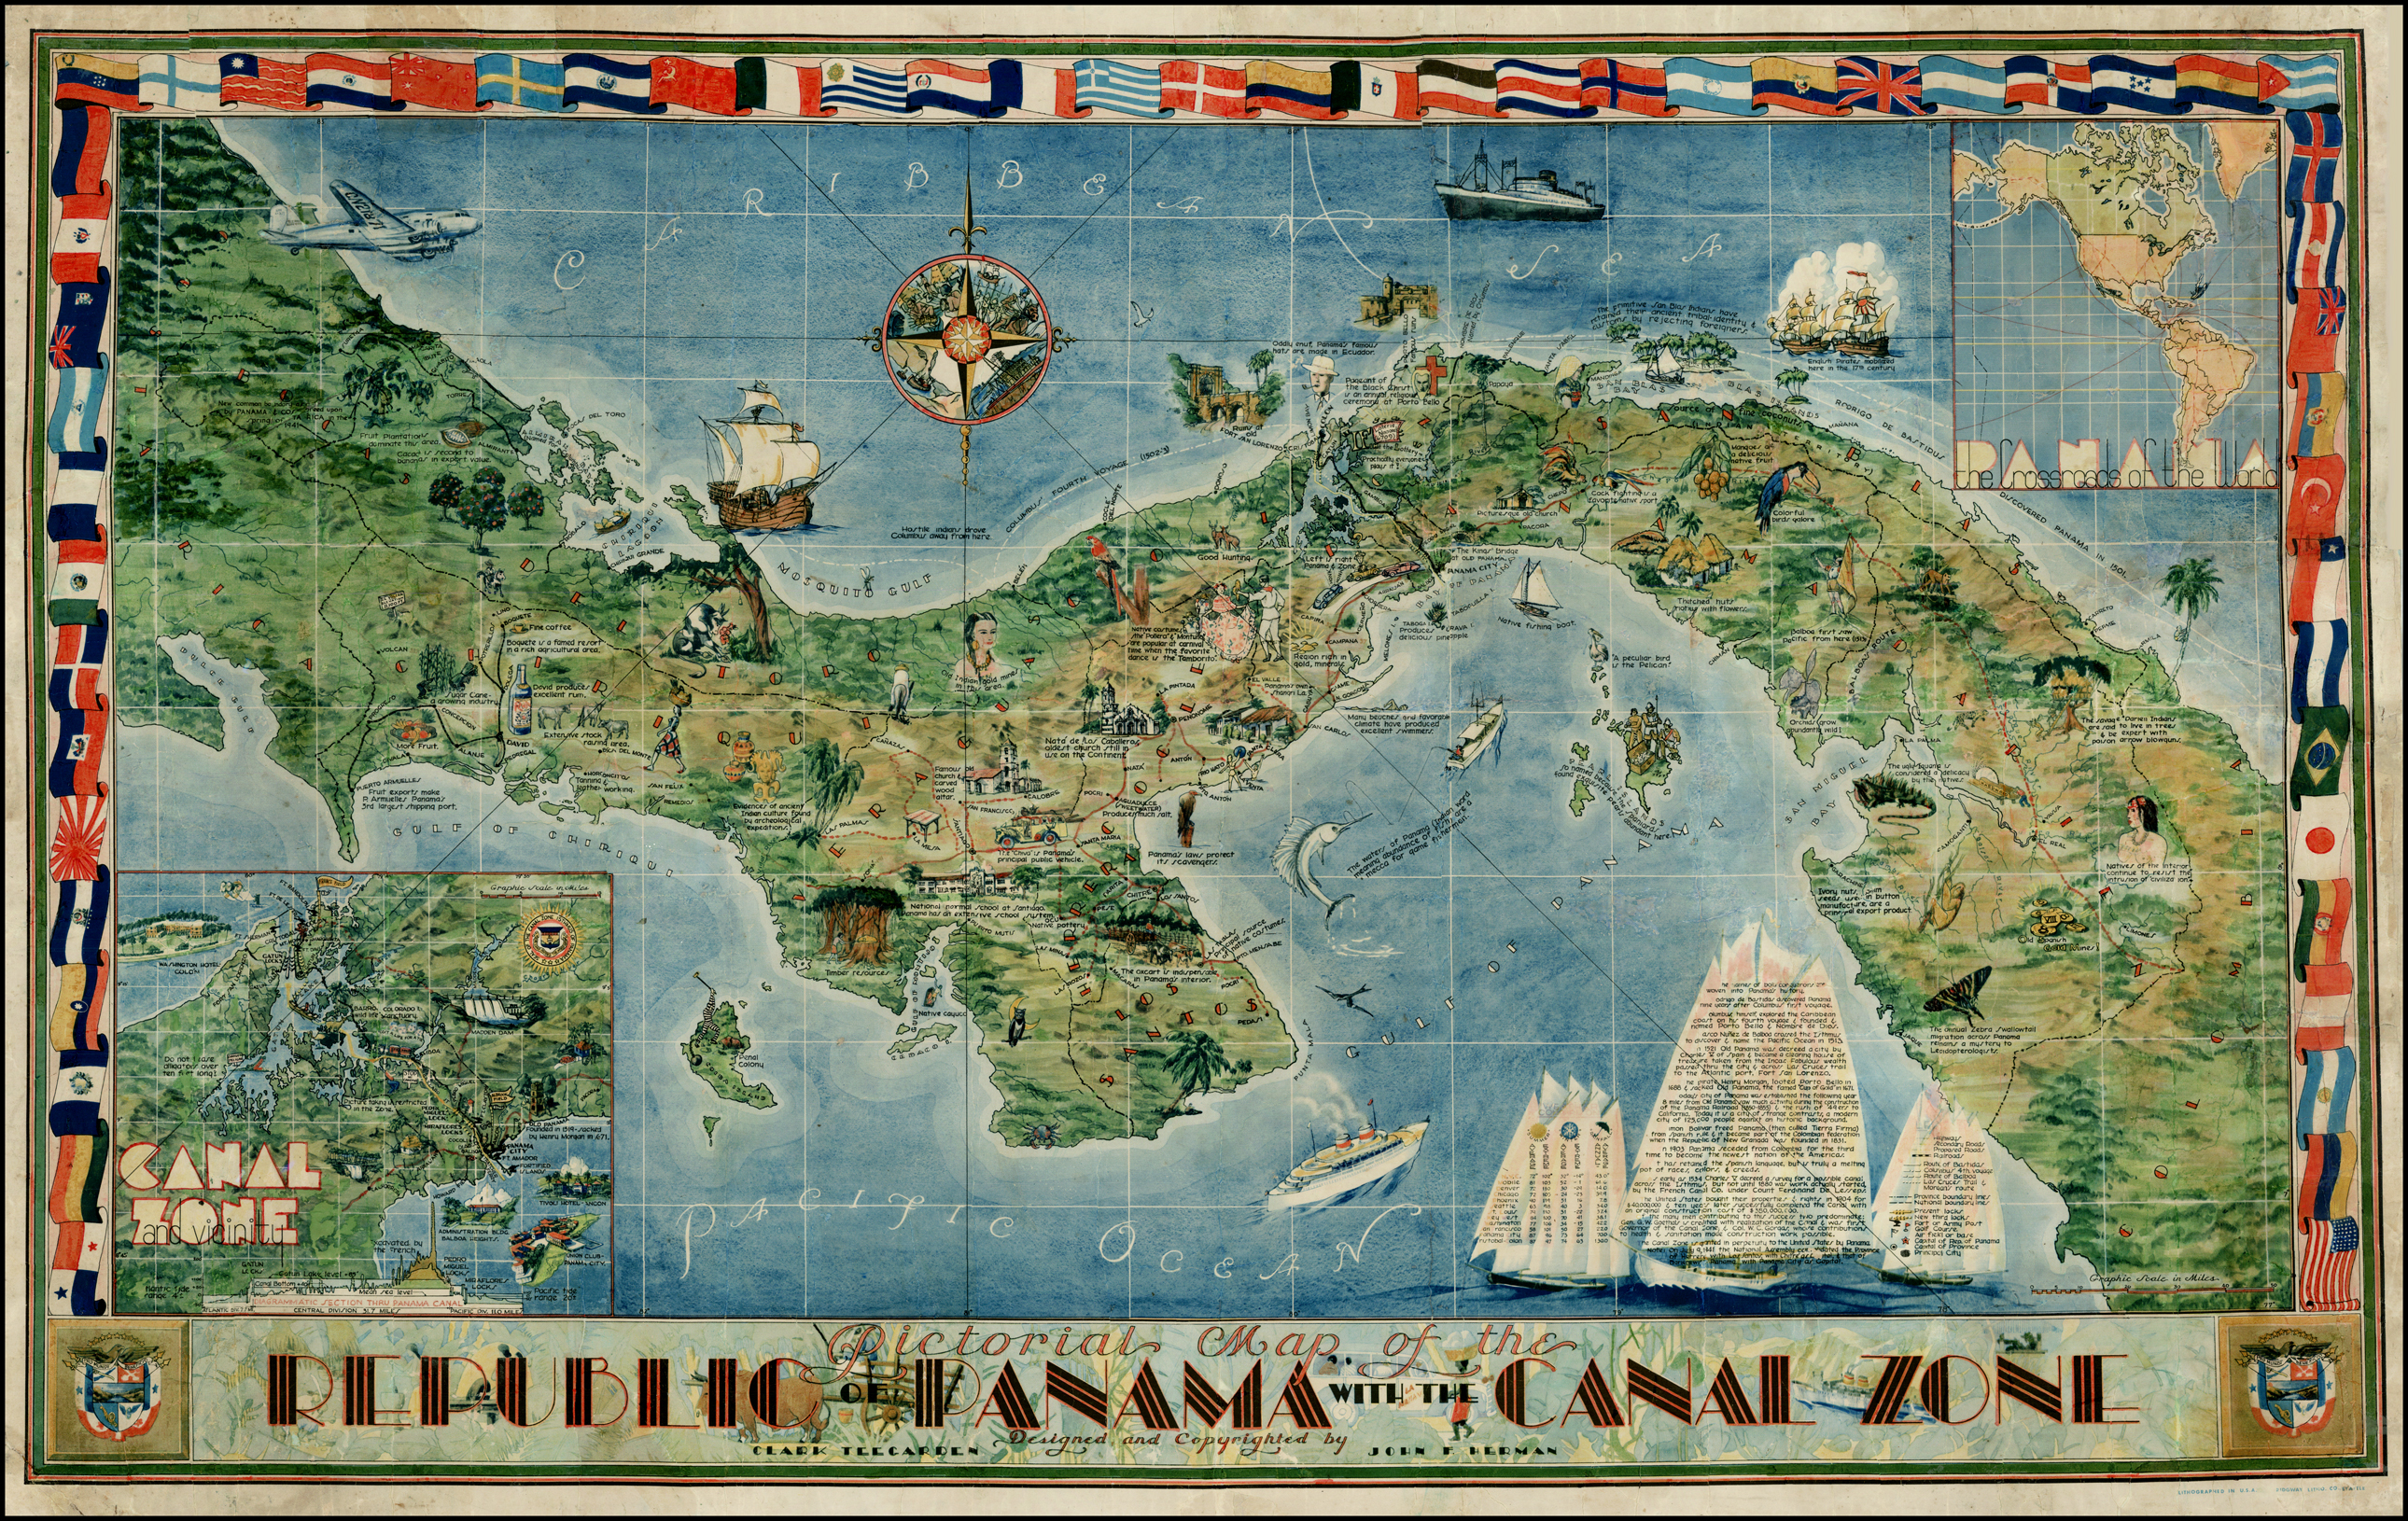 Pictorial Map of The Spanish Americas on the Panama Mail Steamship Wall Poster